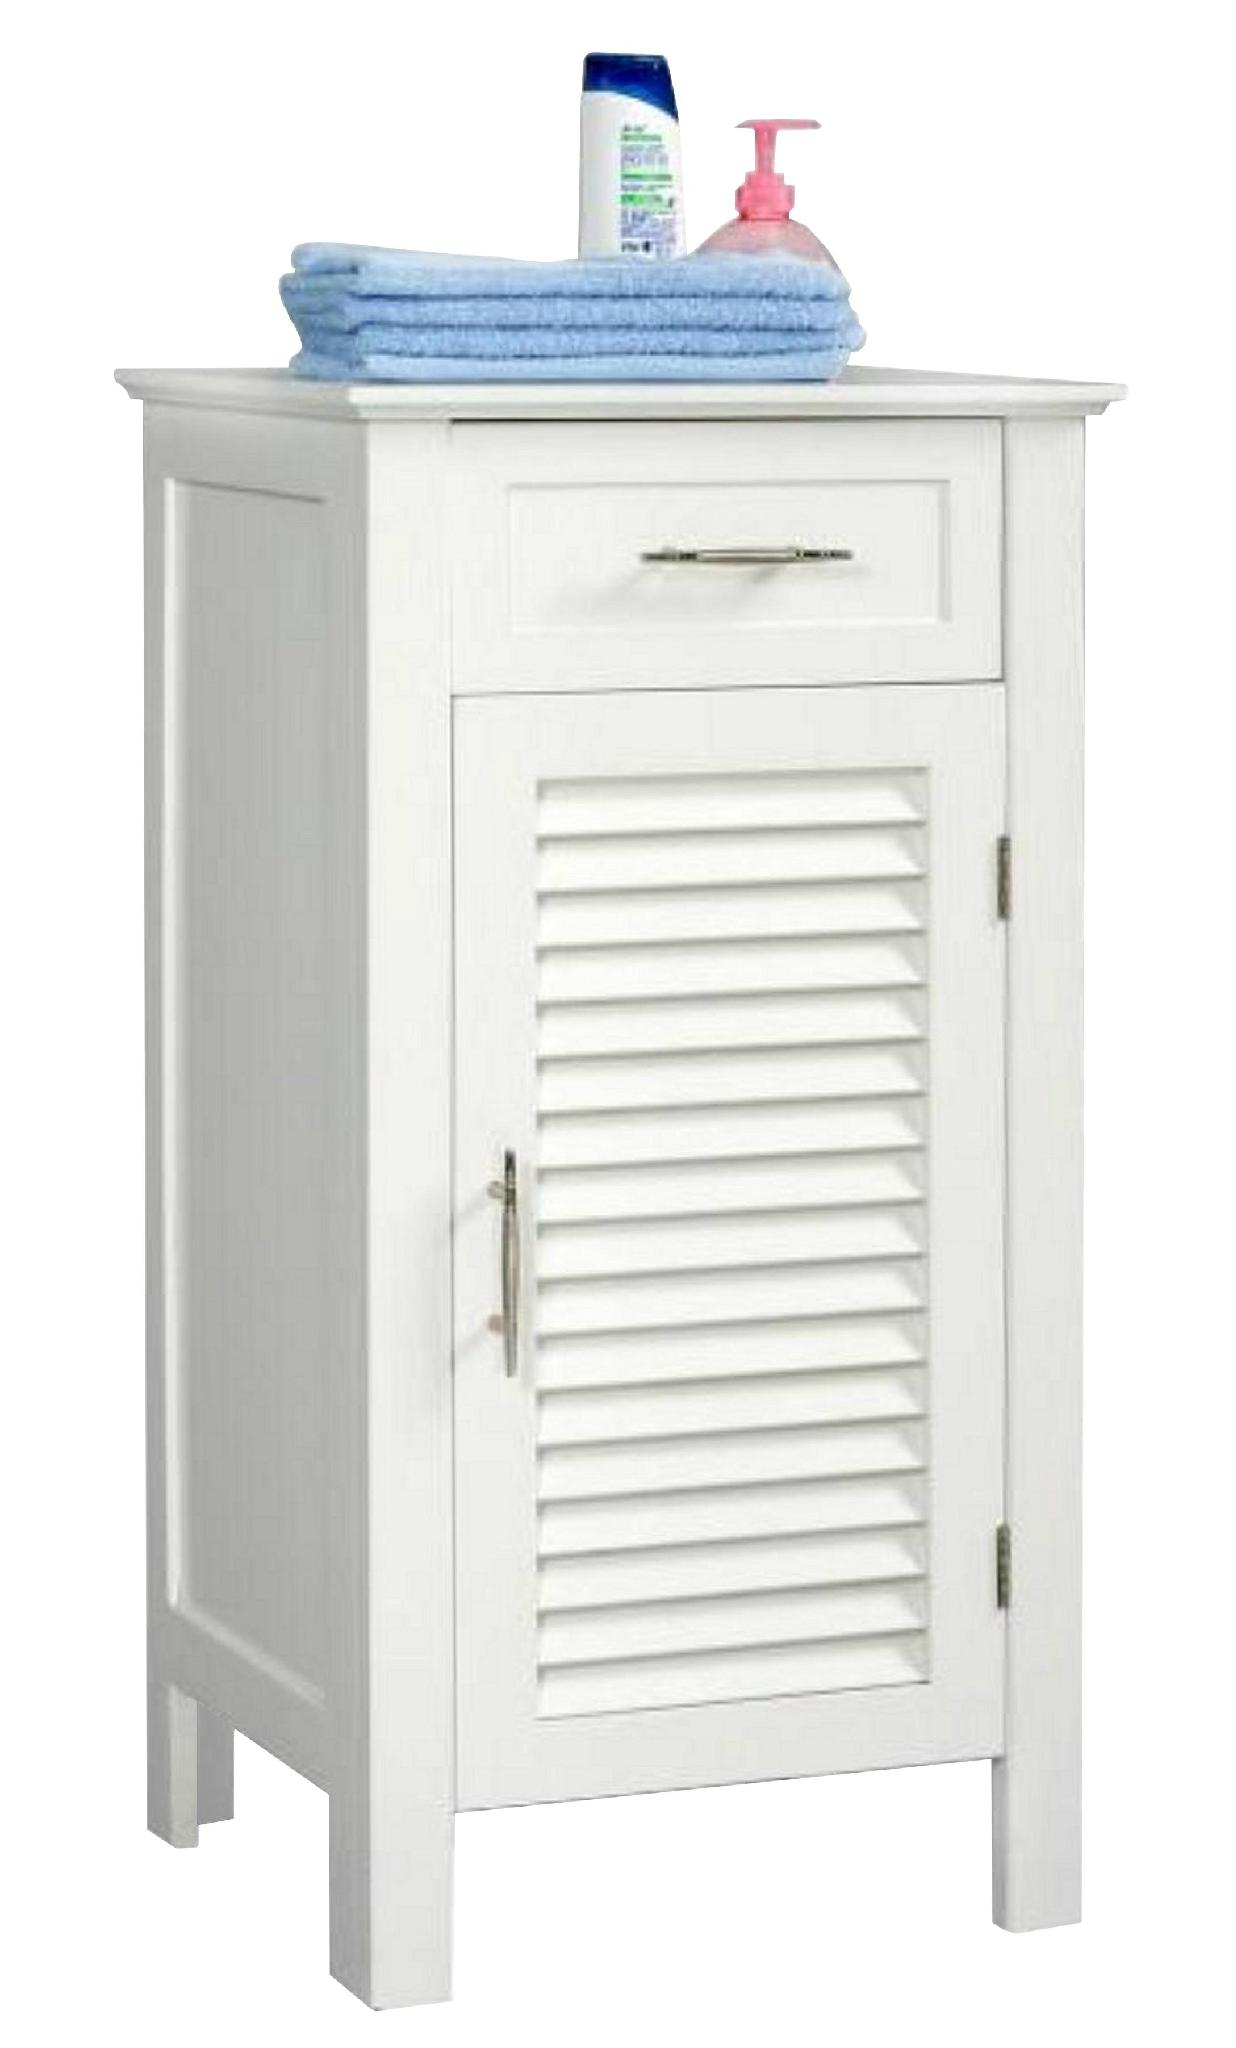 louvered door bathroom small linen storage white cabinet wd 2996 mighty taiwan manufacturer. Black Bedroom Furniture Sets. Home Design Ideas